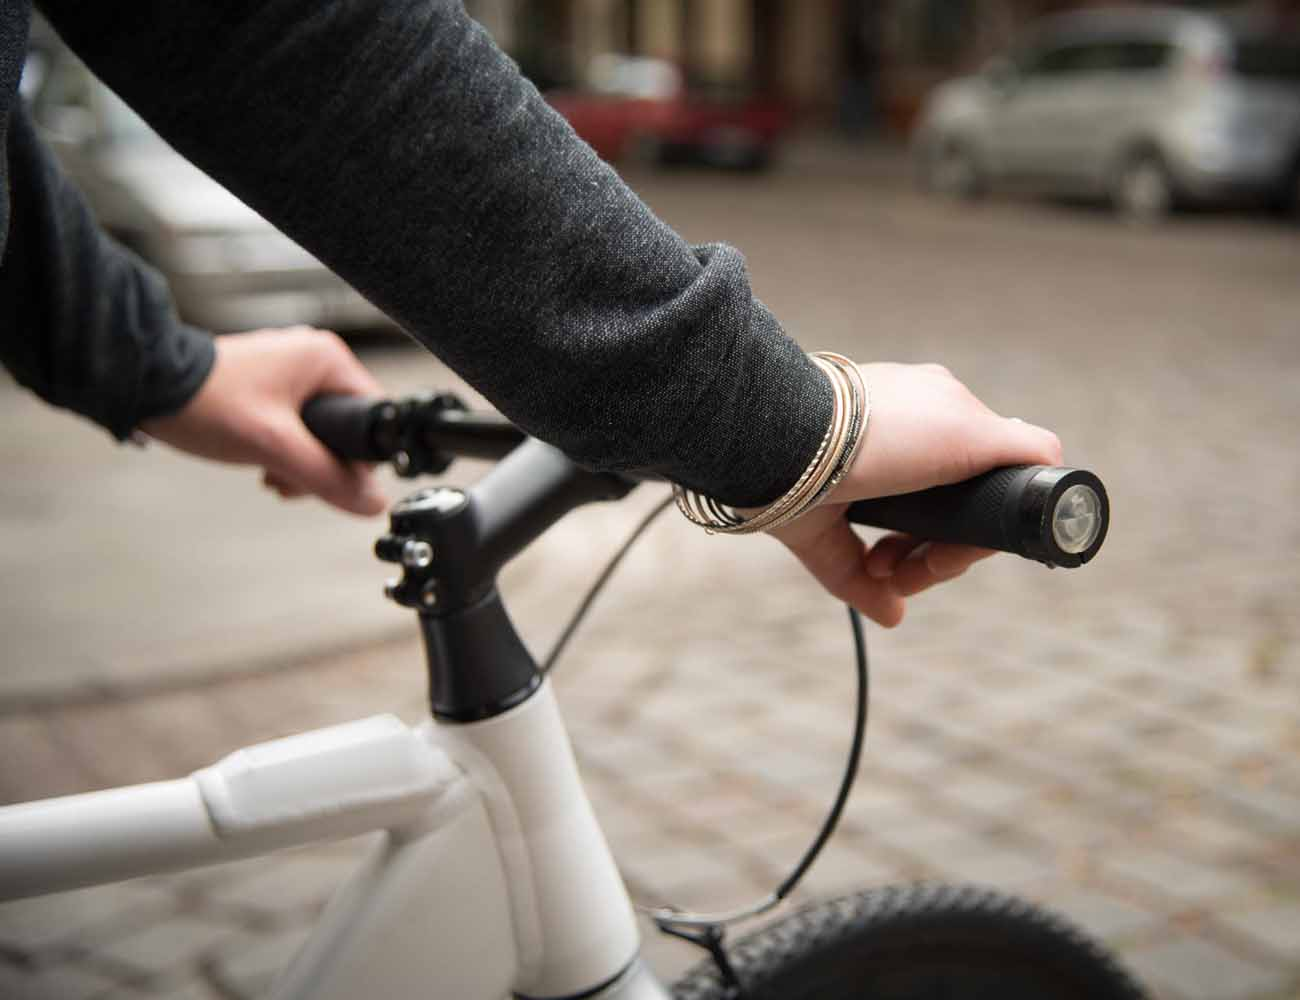 smrtGRiPS: World's First Connected Bike Grips